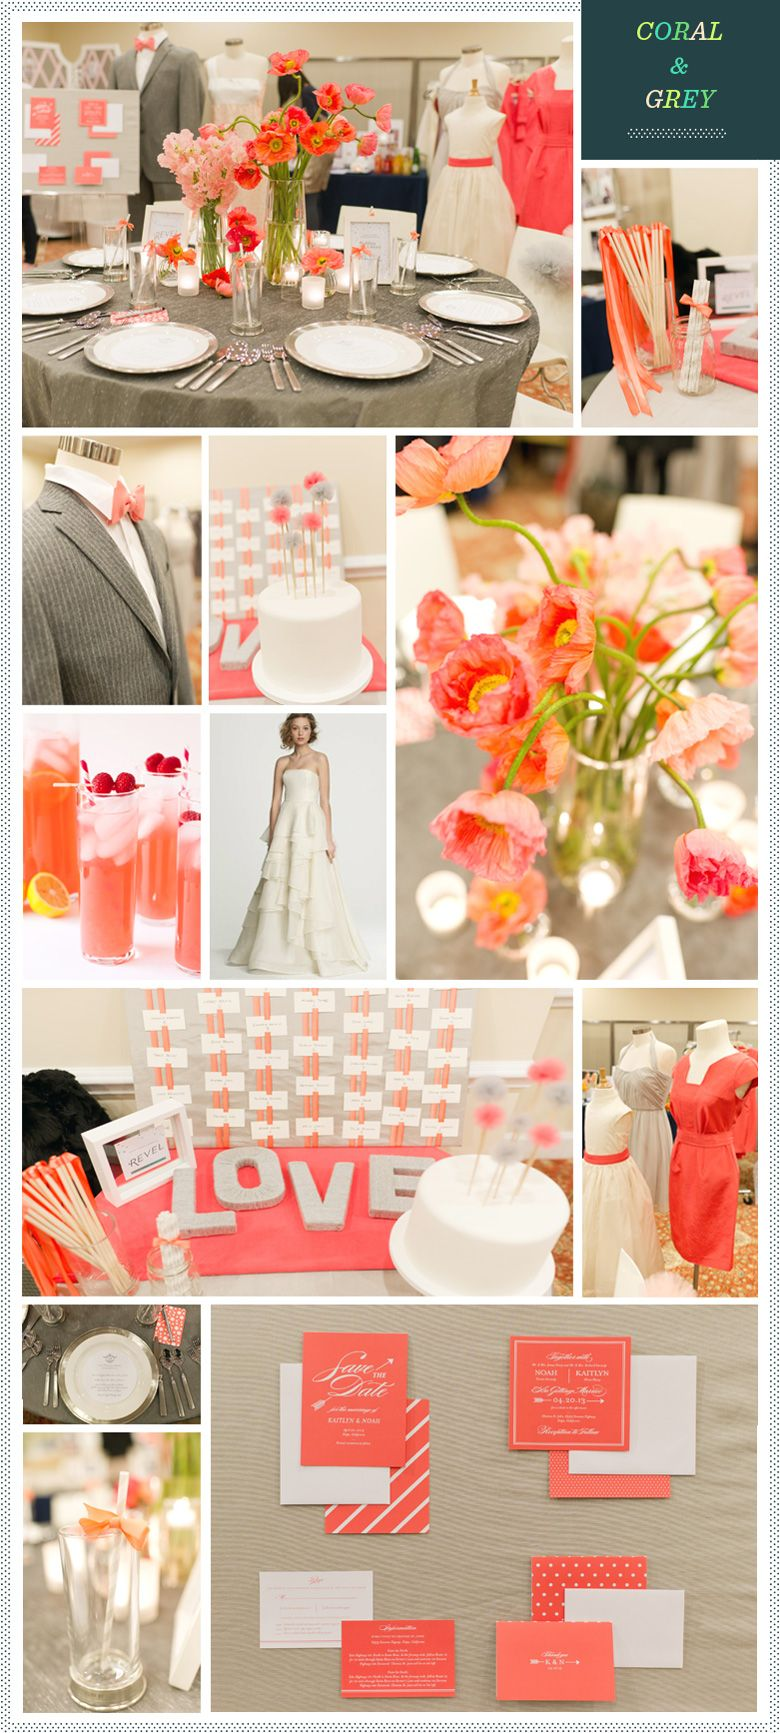 Wedding decorations yellow and gray  coral and grey  Once Upon a Time  Un thème  Pinterest  Gray